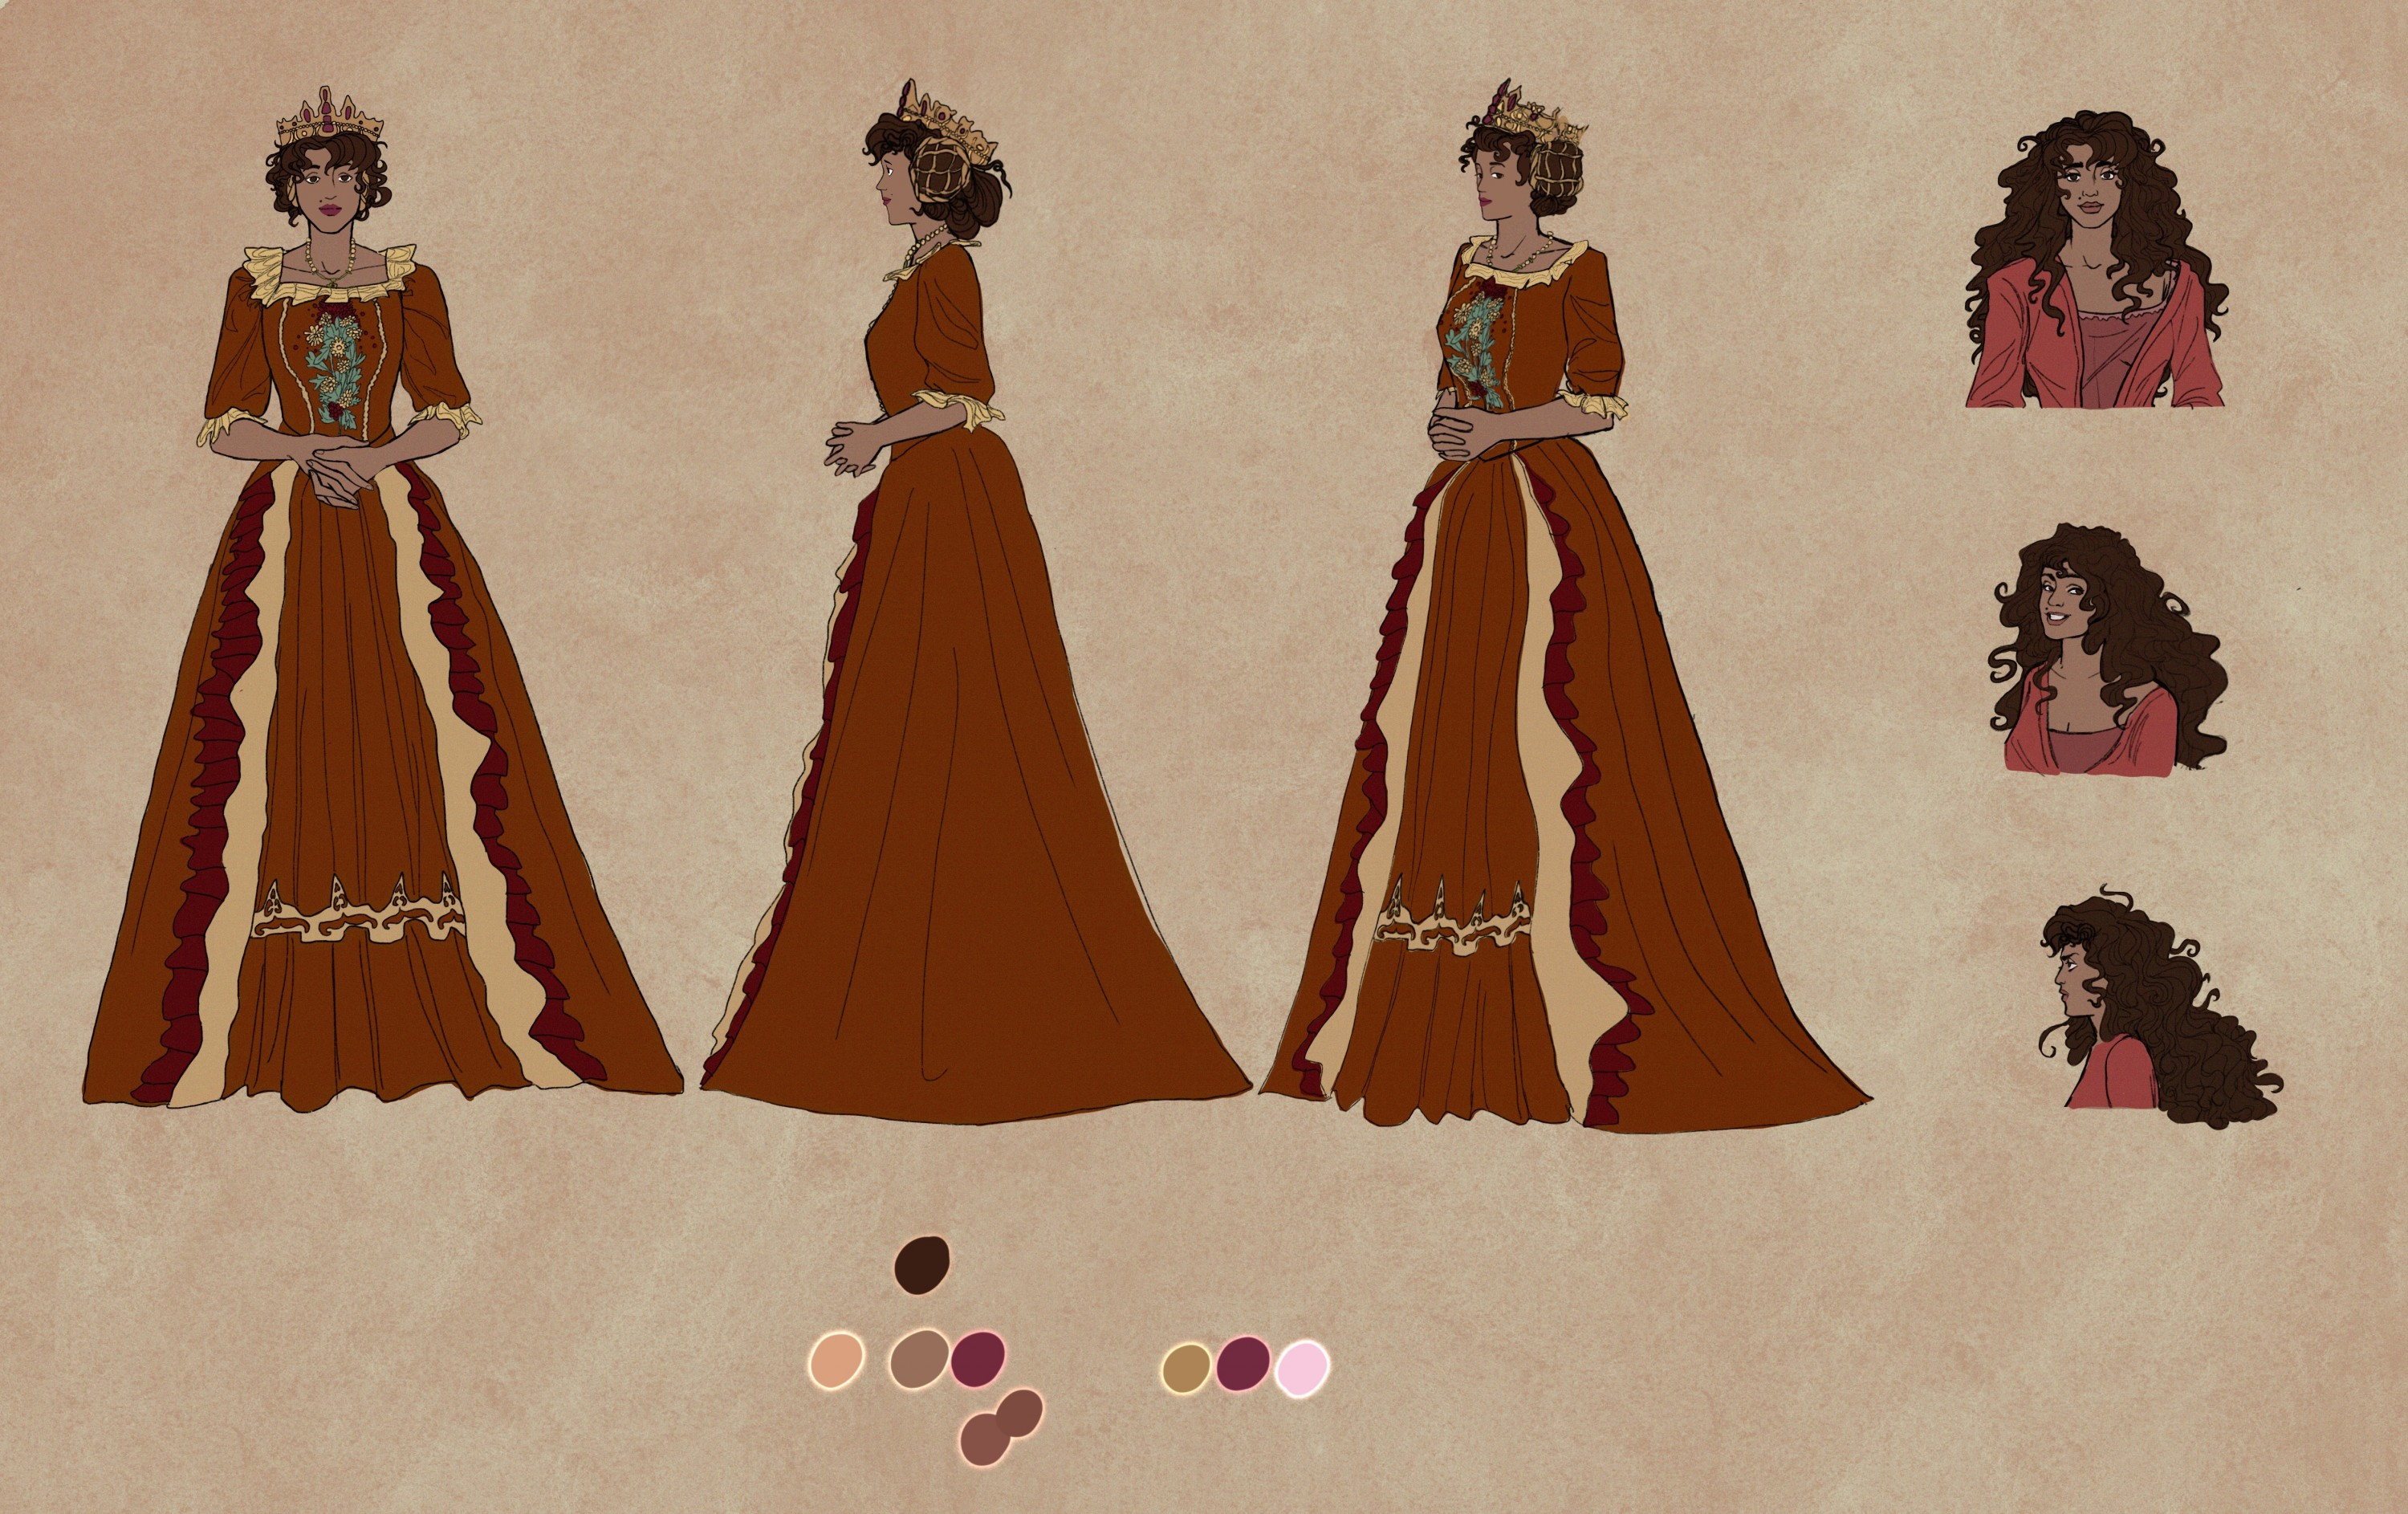 Concept work and additional drawings for the characters from Sunlight.